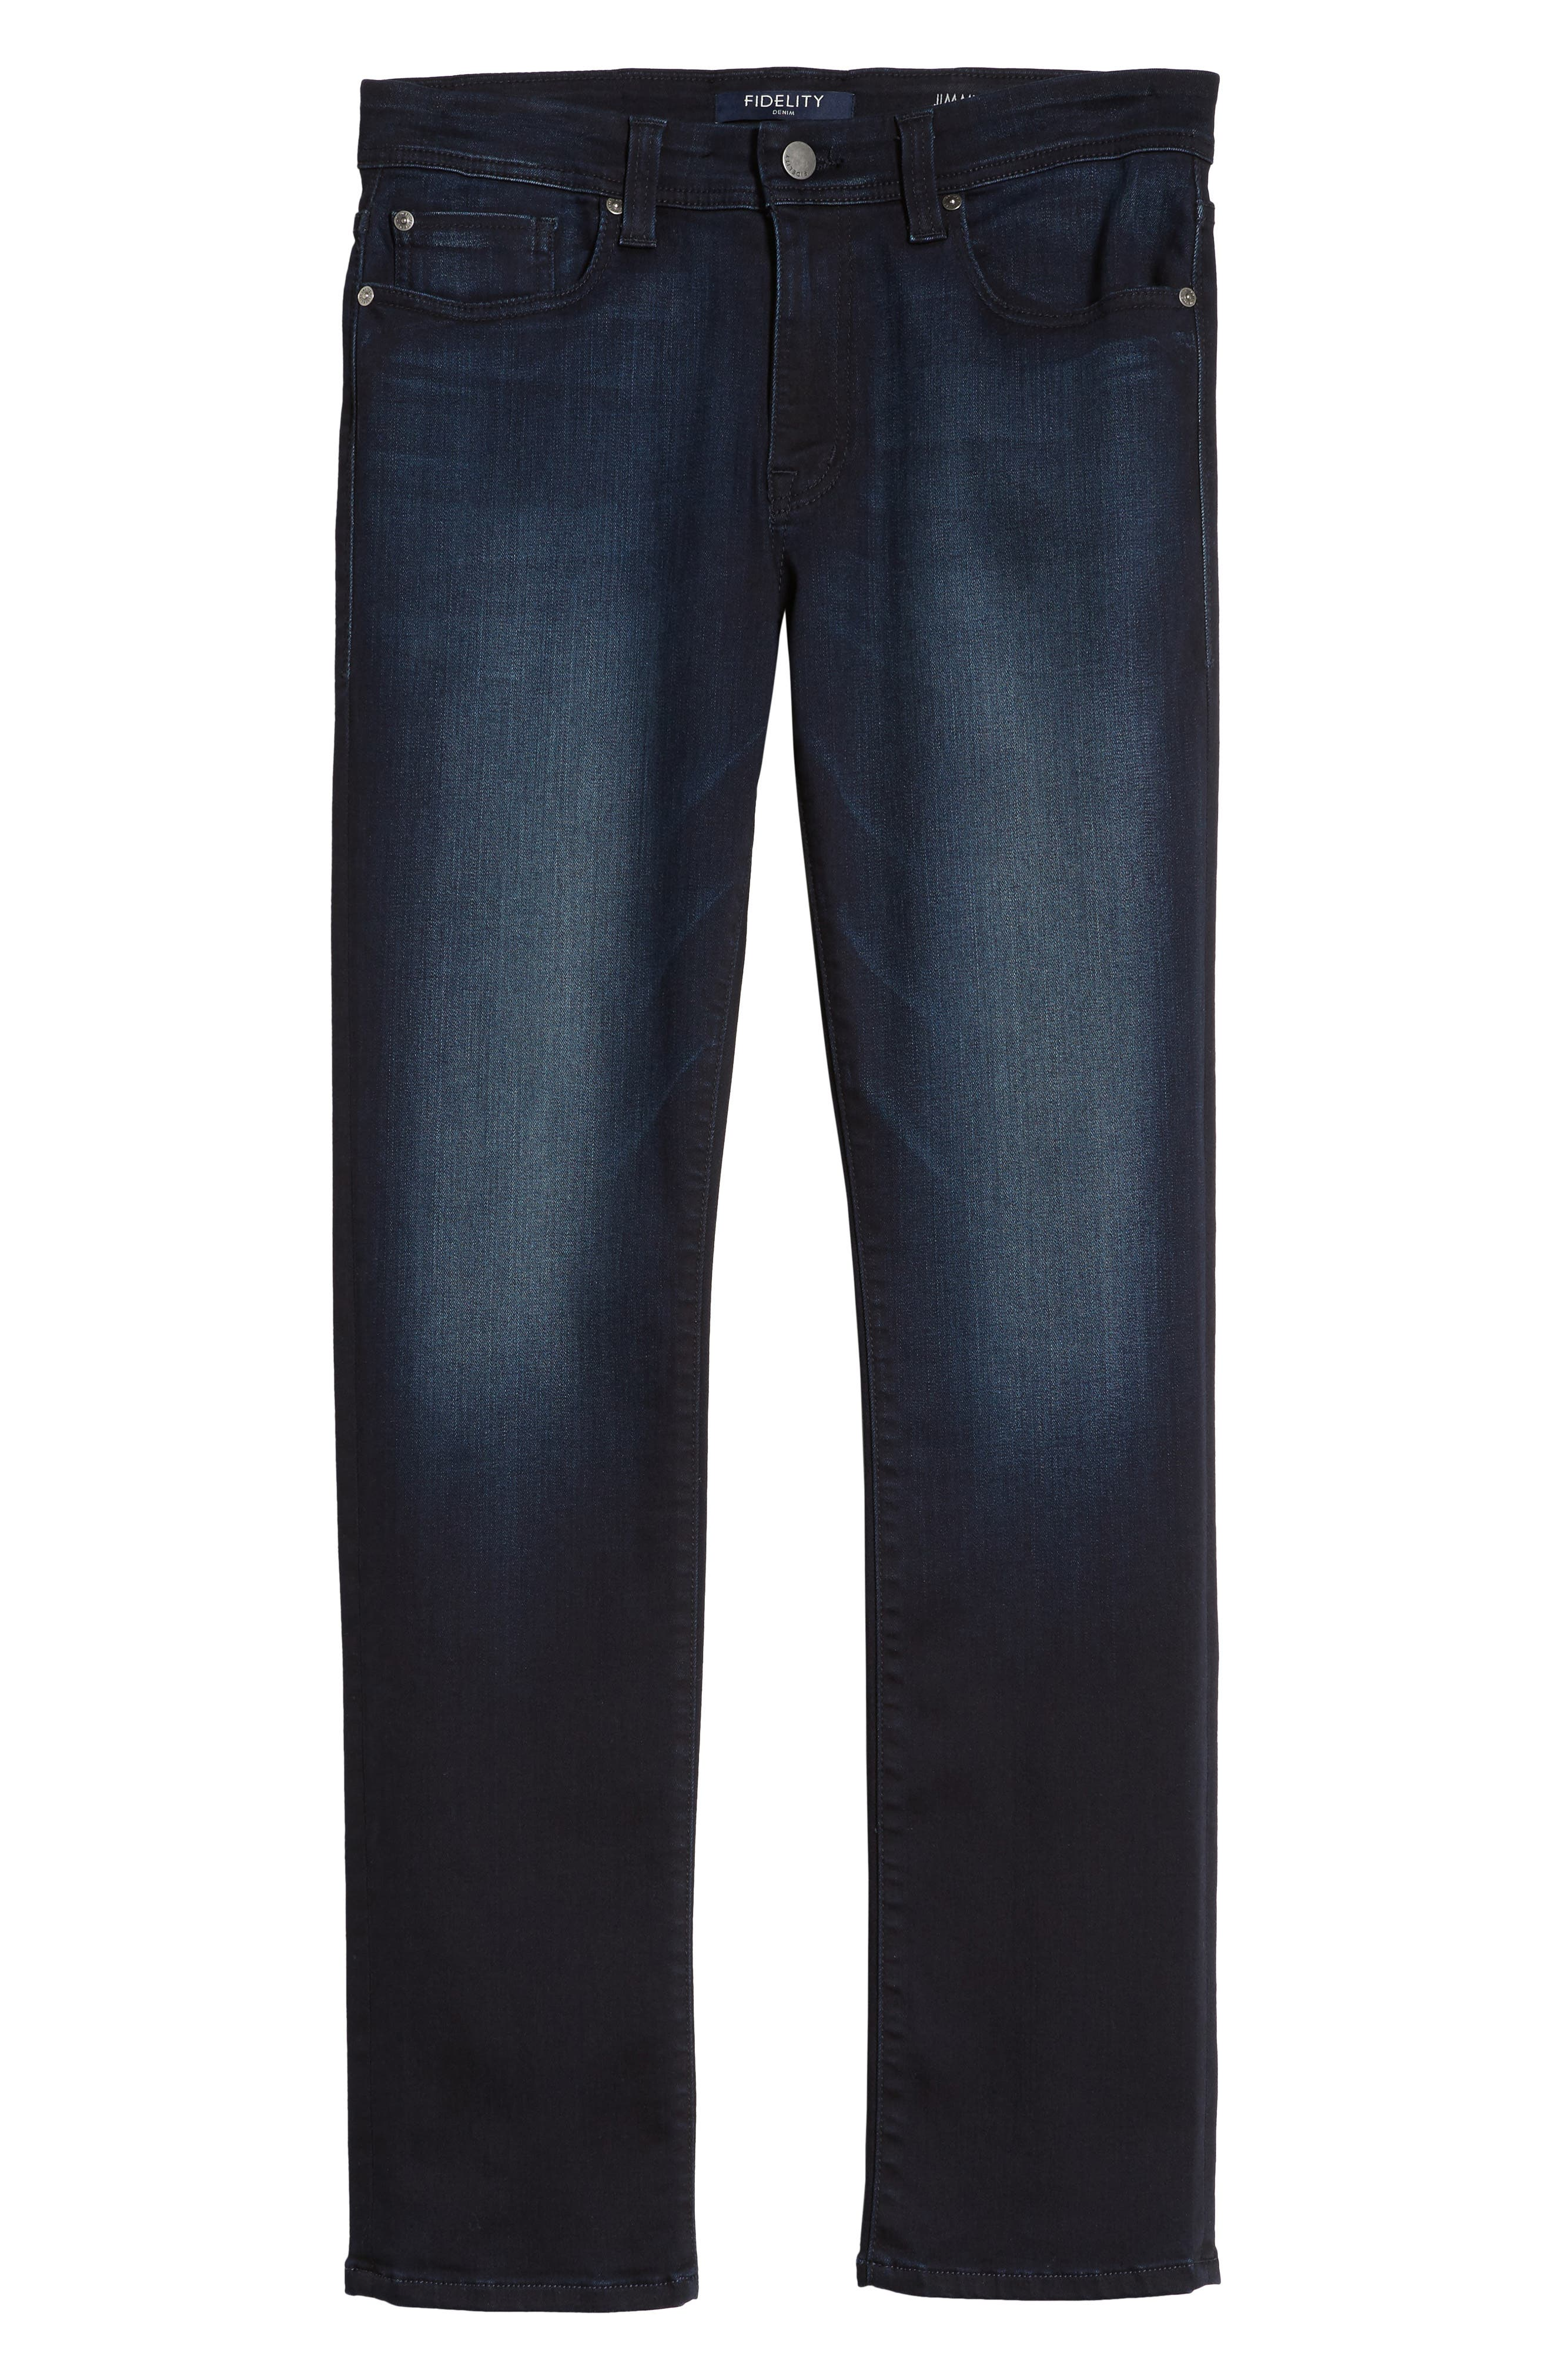 Jimmy Slim Straight Fit Jeans,                             Alternate thumbnail 6, color,                             Barracuda